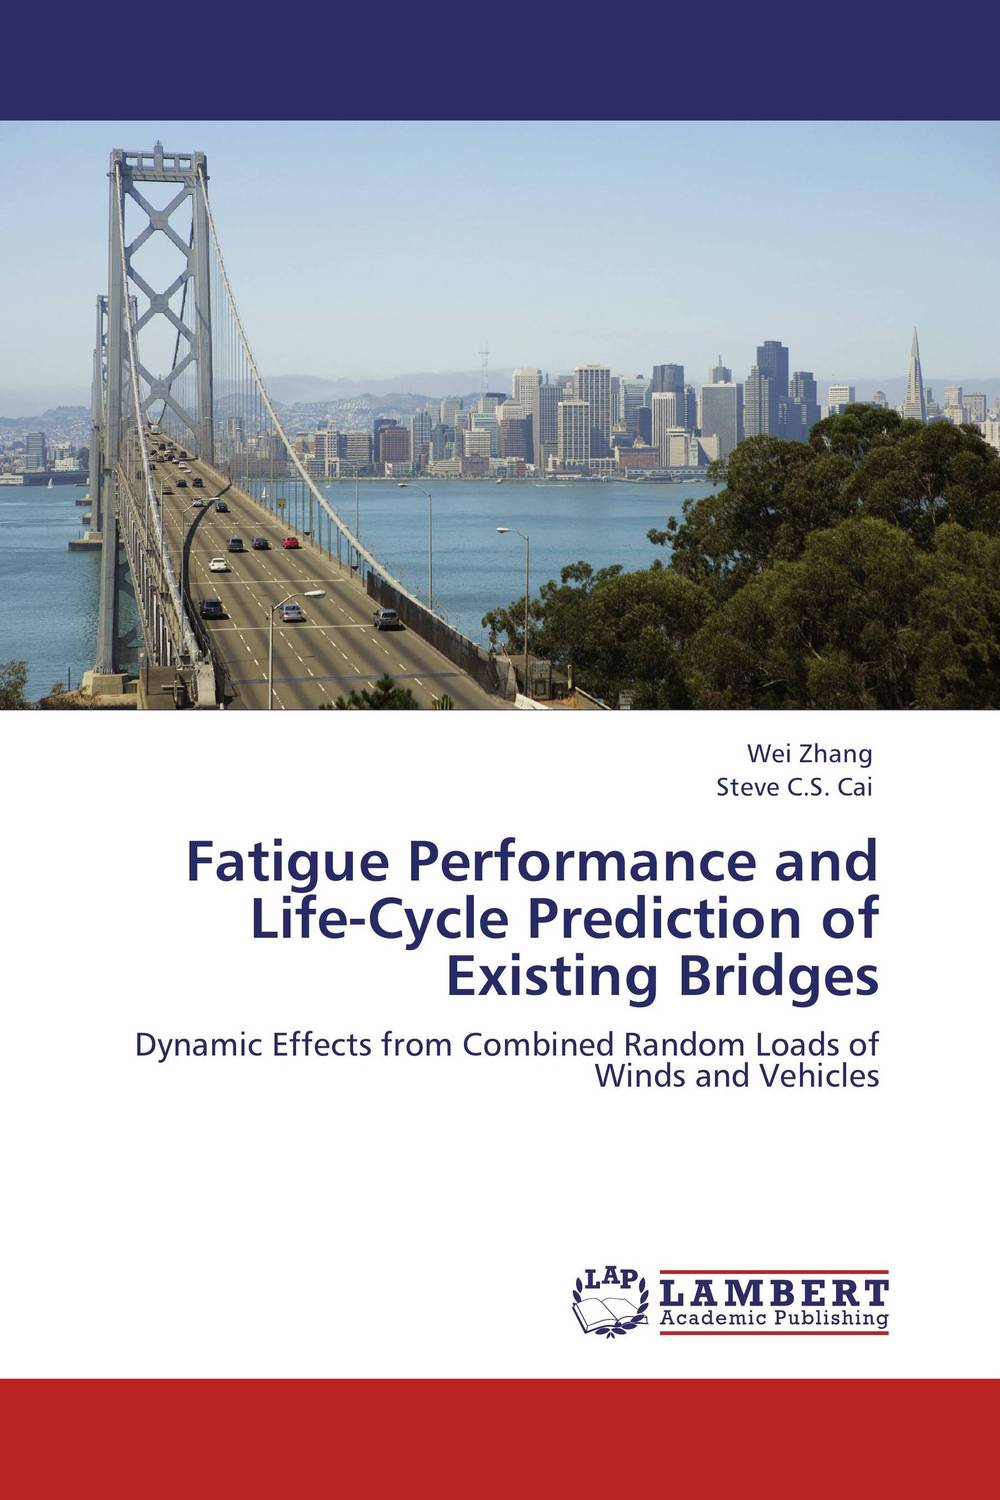 Fatigue Performance and Life-Cycle Prediction of Existing Bridges you lin xu wind effects on cable supported bridges